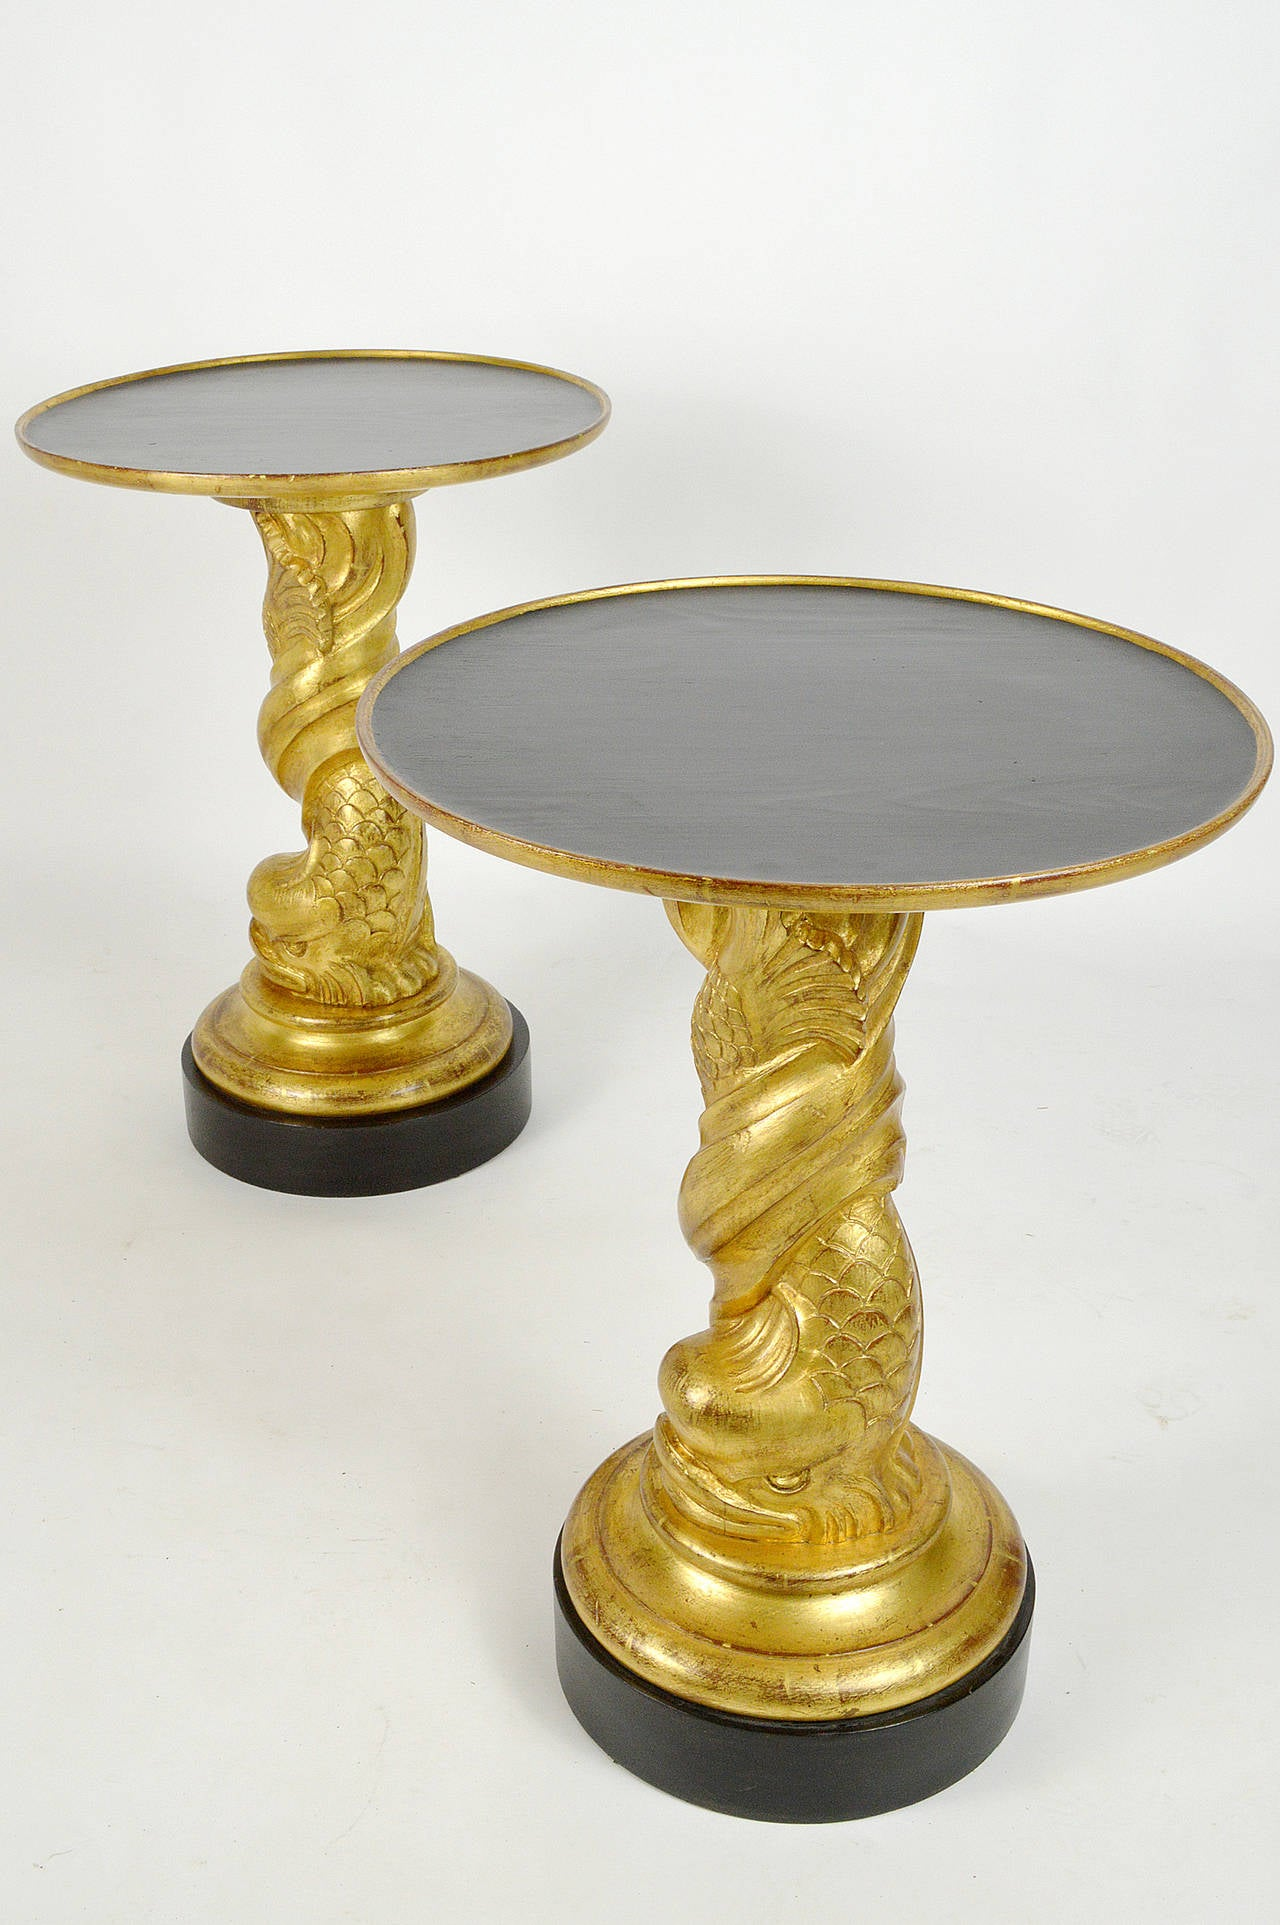 Carved giltwood dolphin side tables, with black lacquered wood top and base, above spiraling dolphin support. Mid-20th century, in the style of James Mont. Hollywood Regency style.